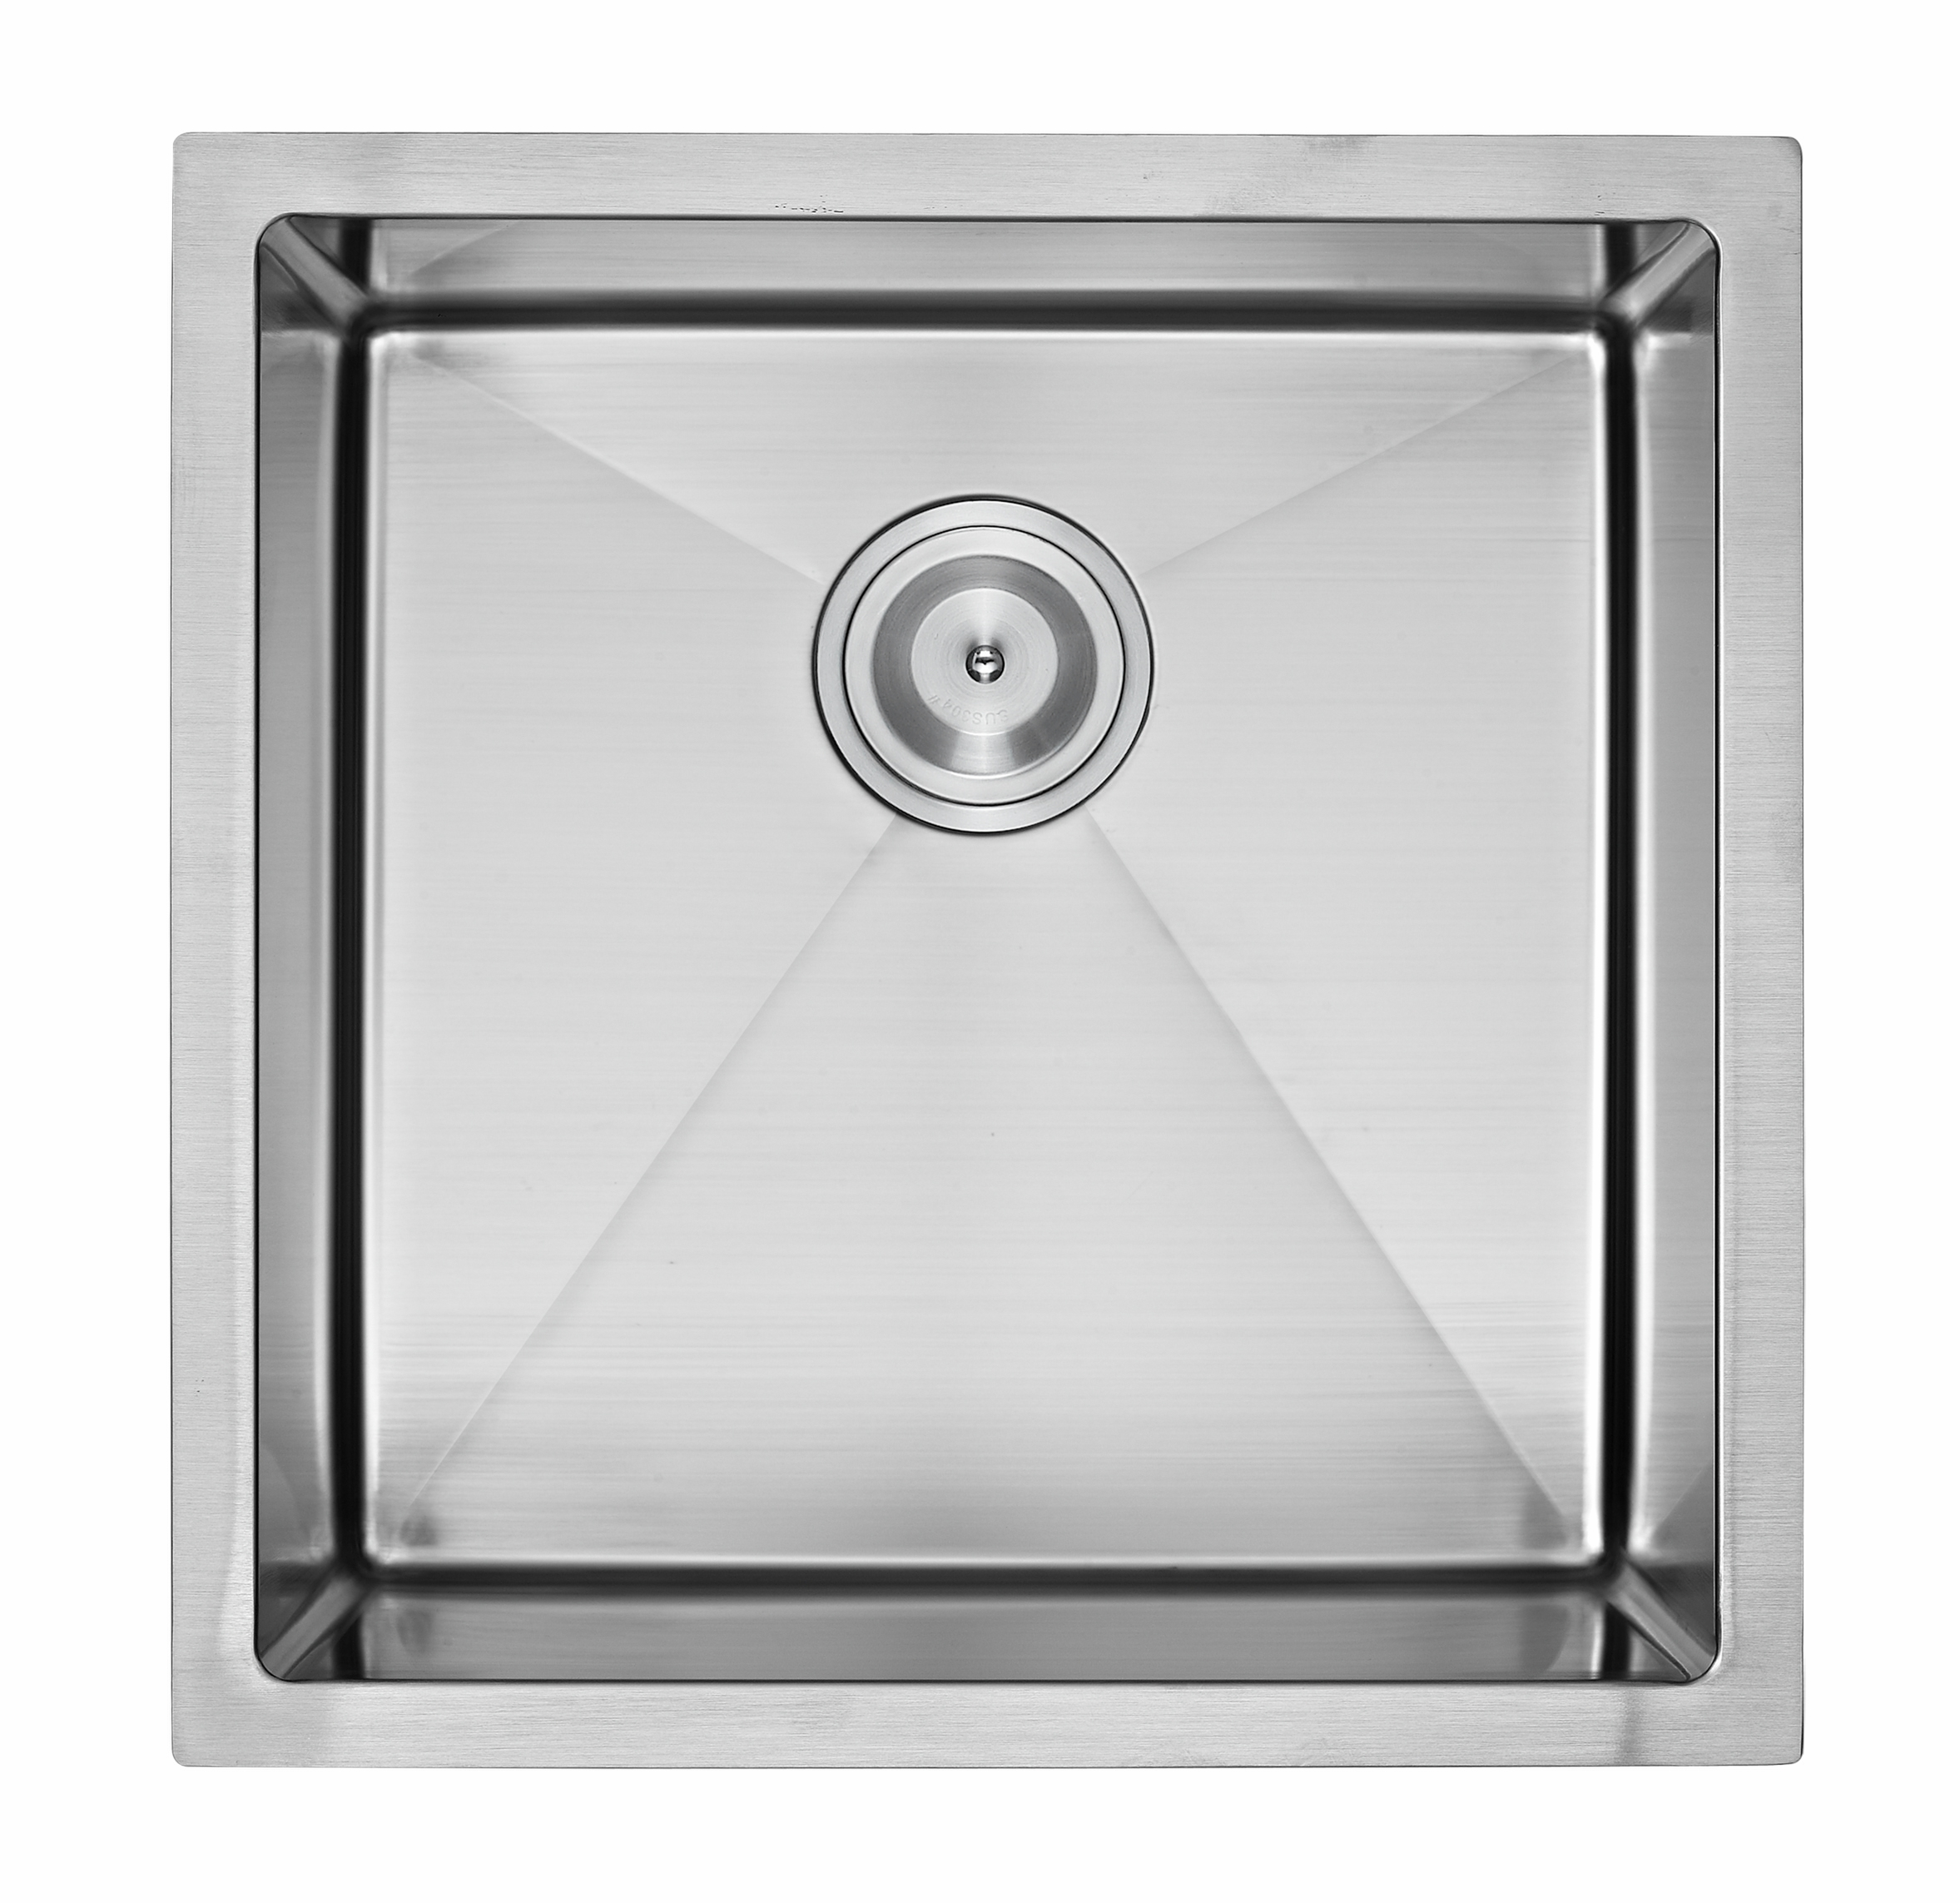 Eclipse Sinks : Very Small Radius Sinks (VSR) from Eclipse Stainless ANO, Inc. Blog ...